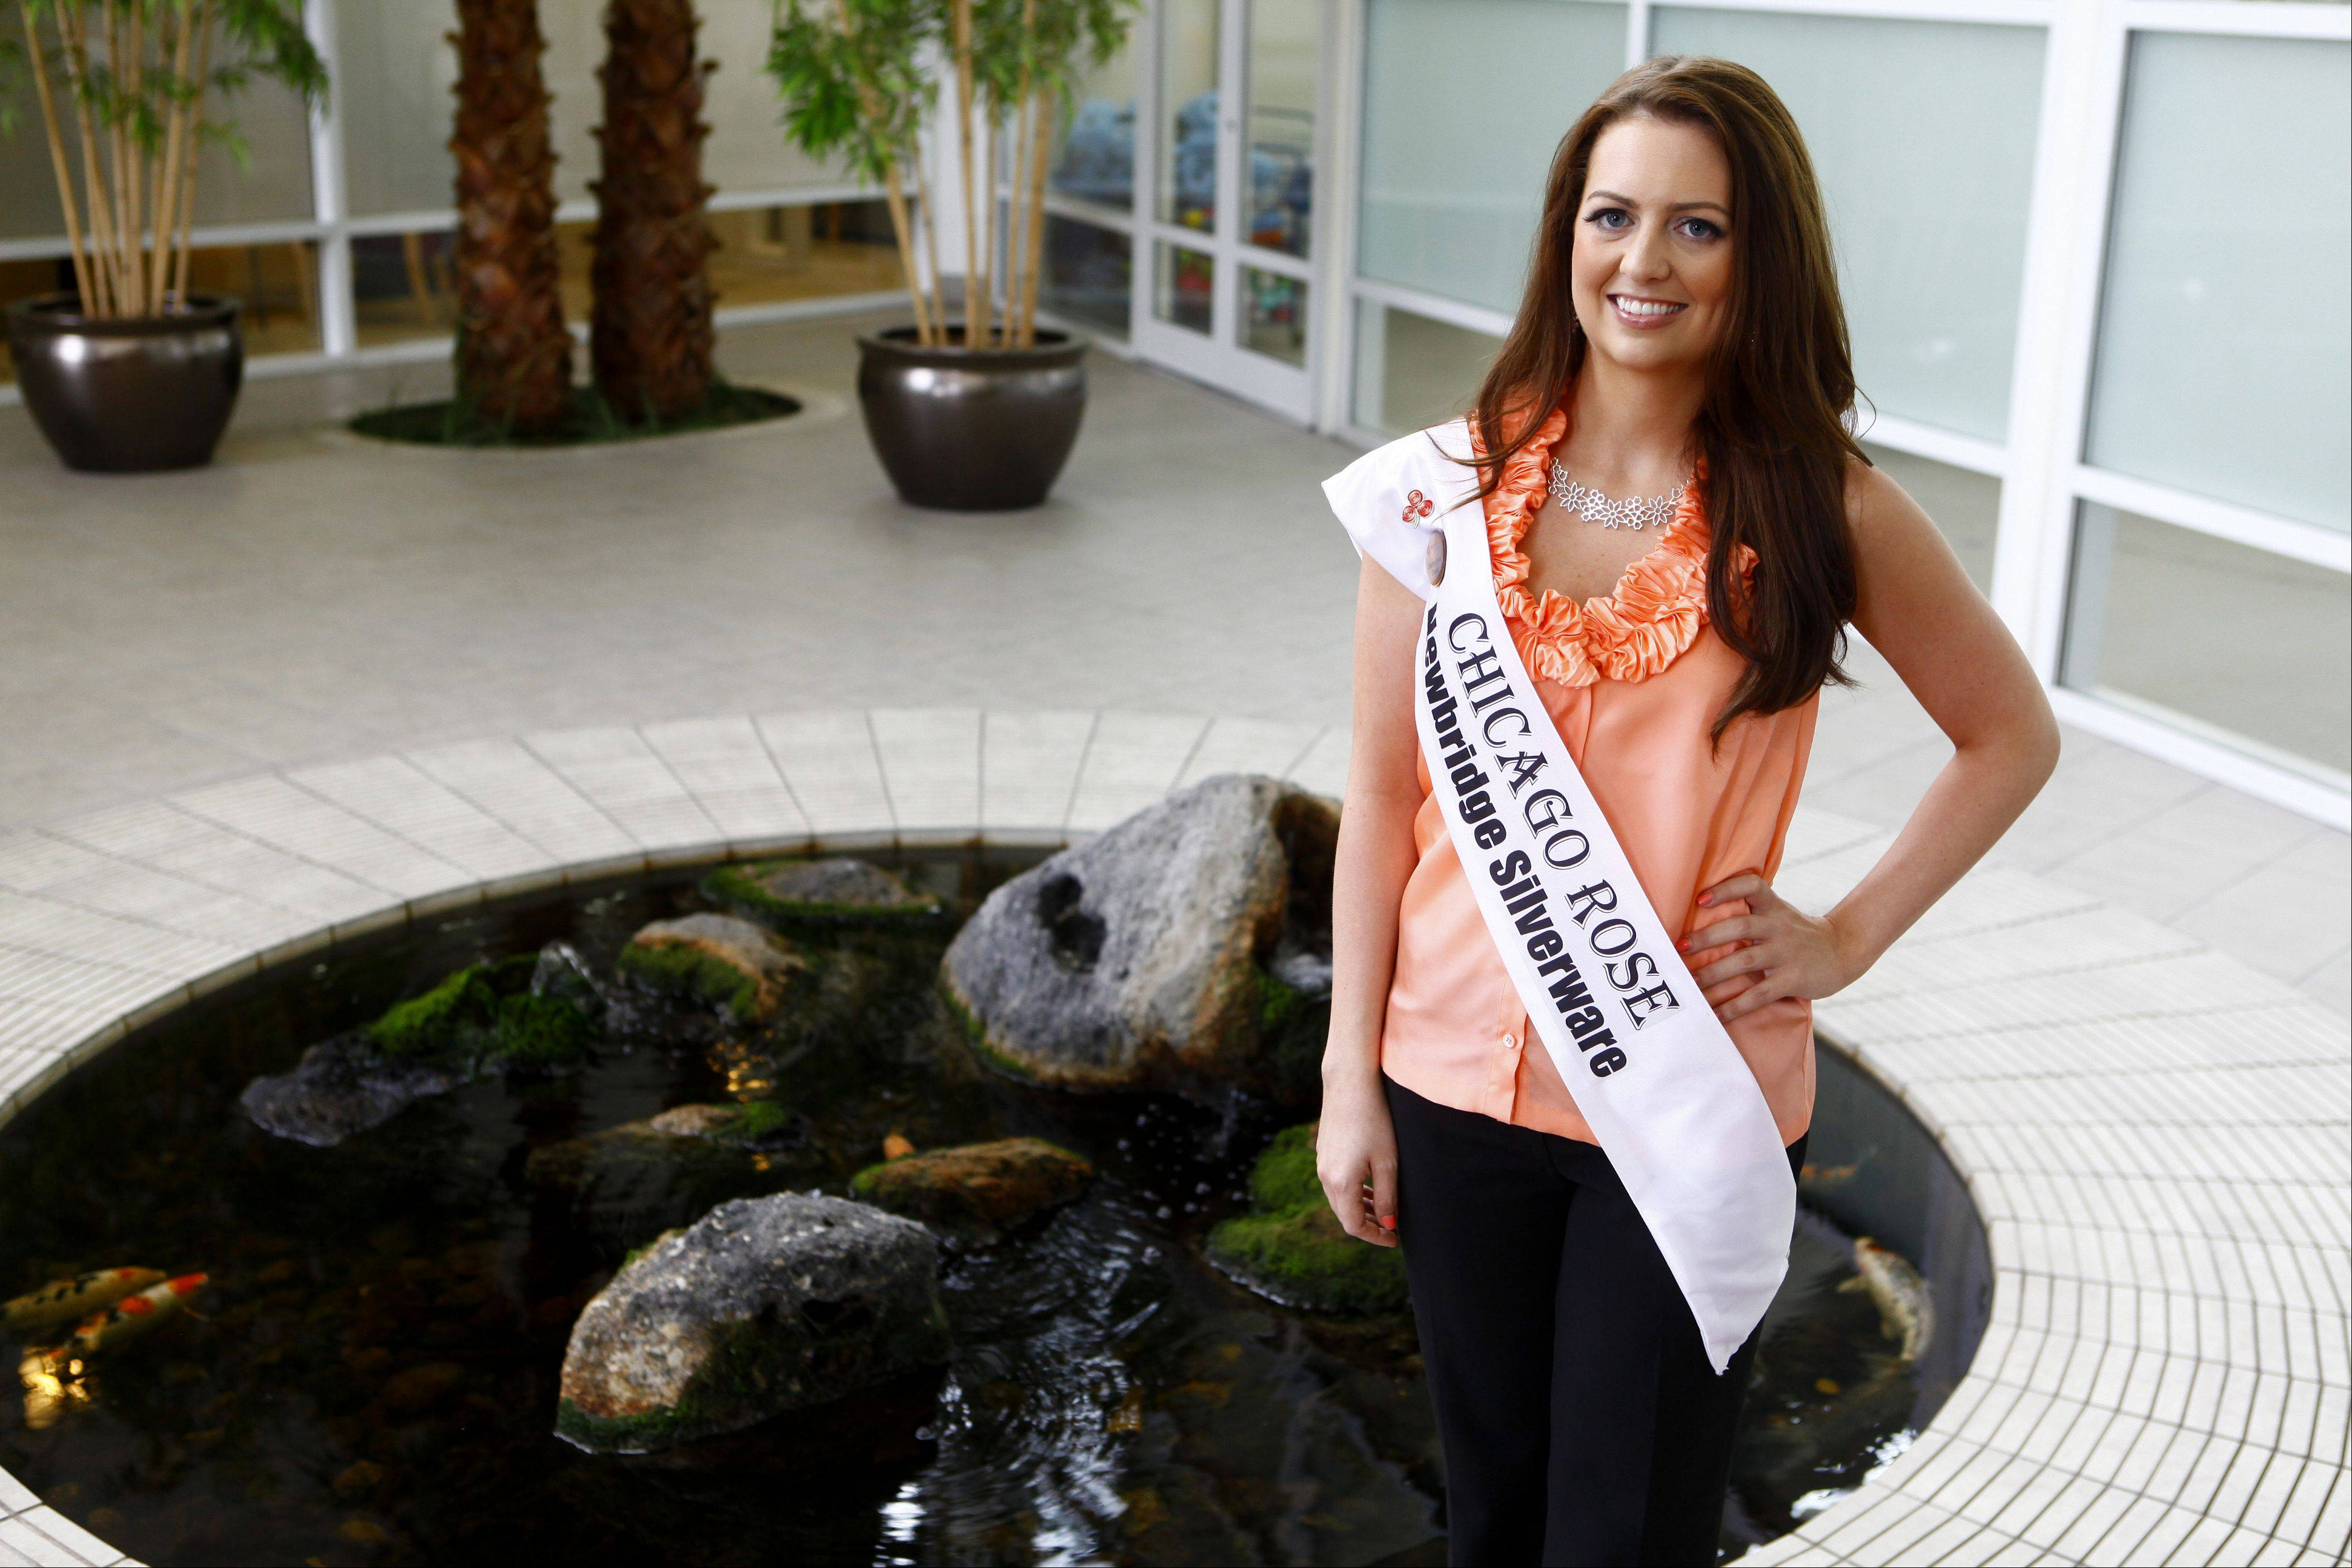 Siobhan Carroll, of Arlington Heights, will be representing Chicago's Irish community in next month's finals of the Rose of Tralee in Ireland. Carroll is one of 32 finalists from all over the world chosen for the finals.